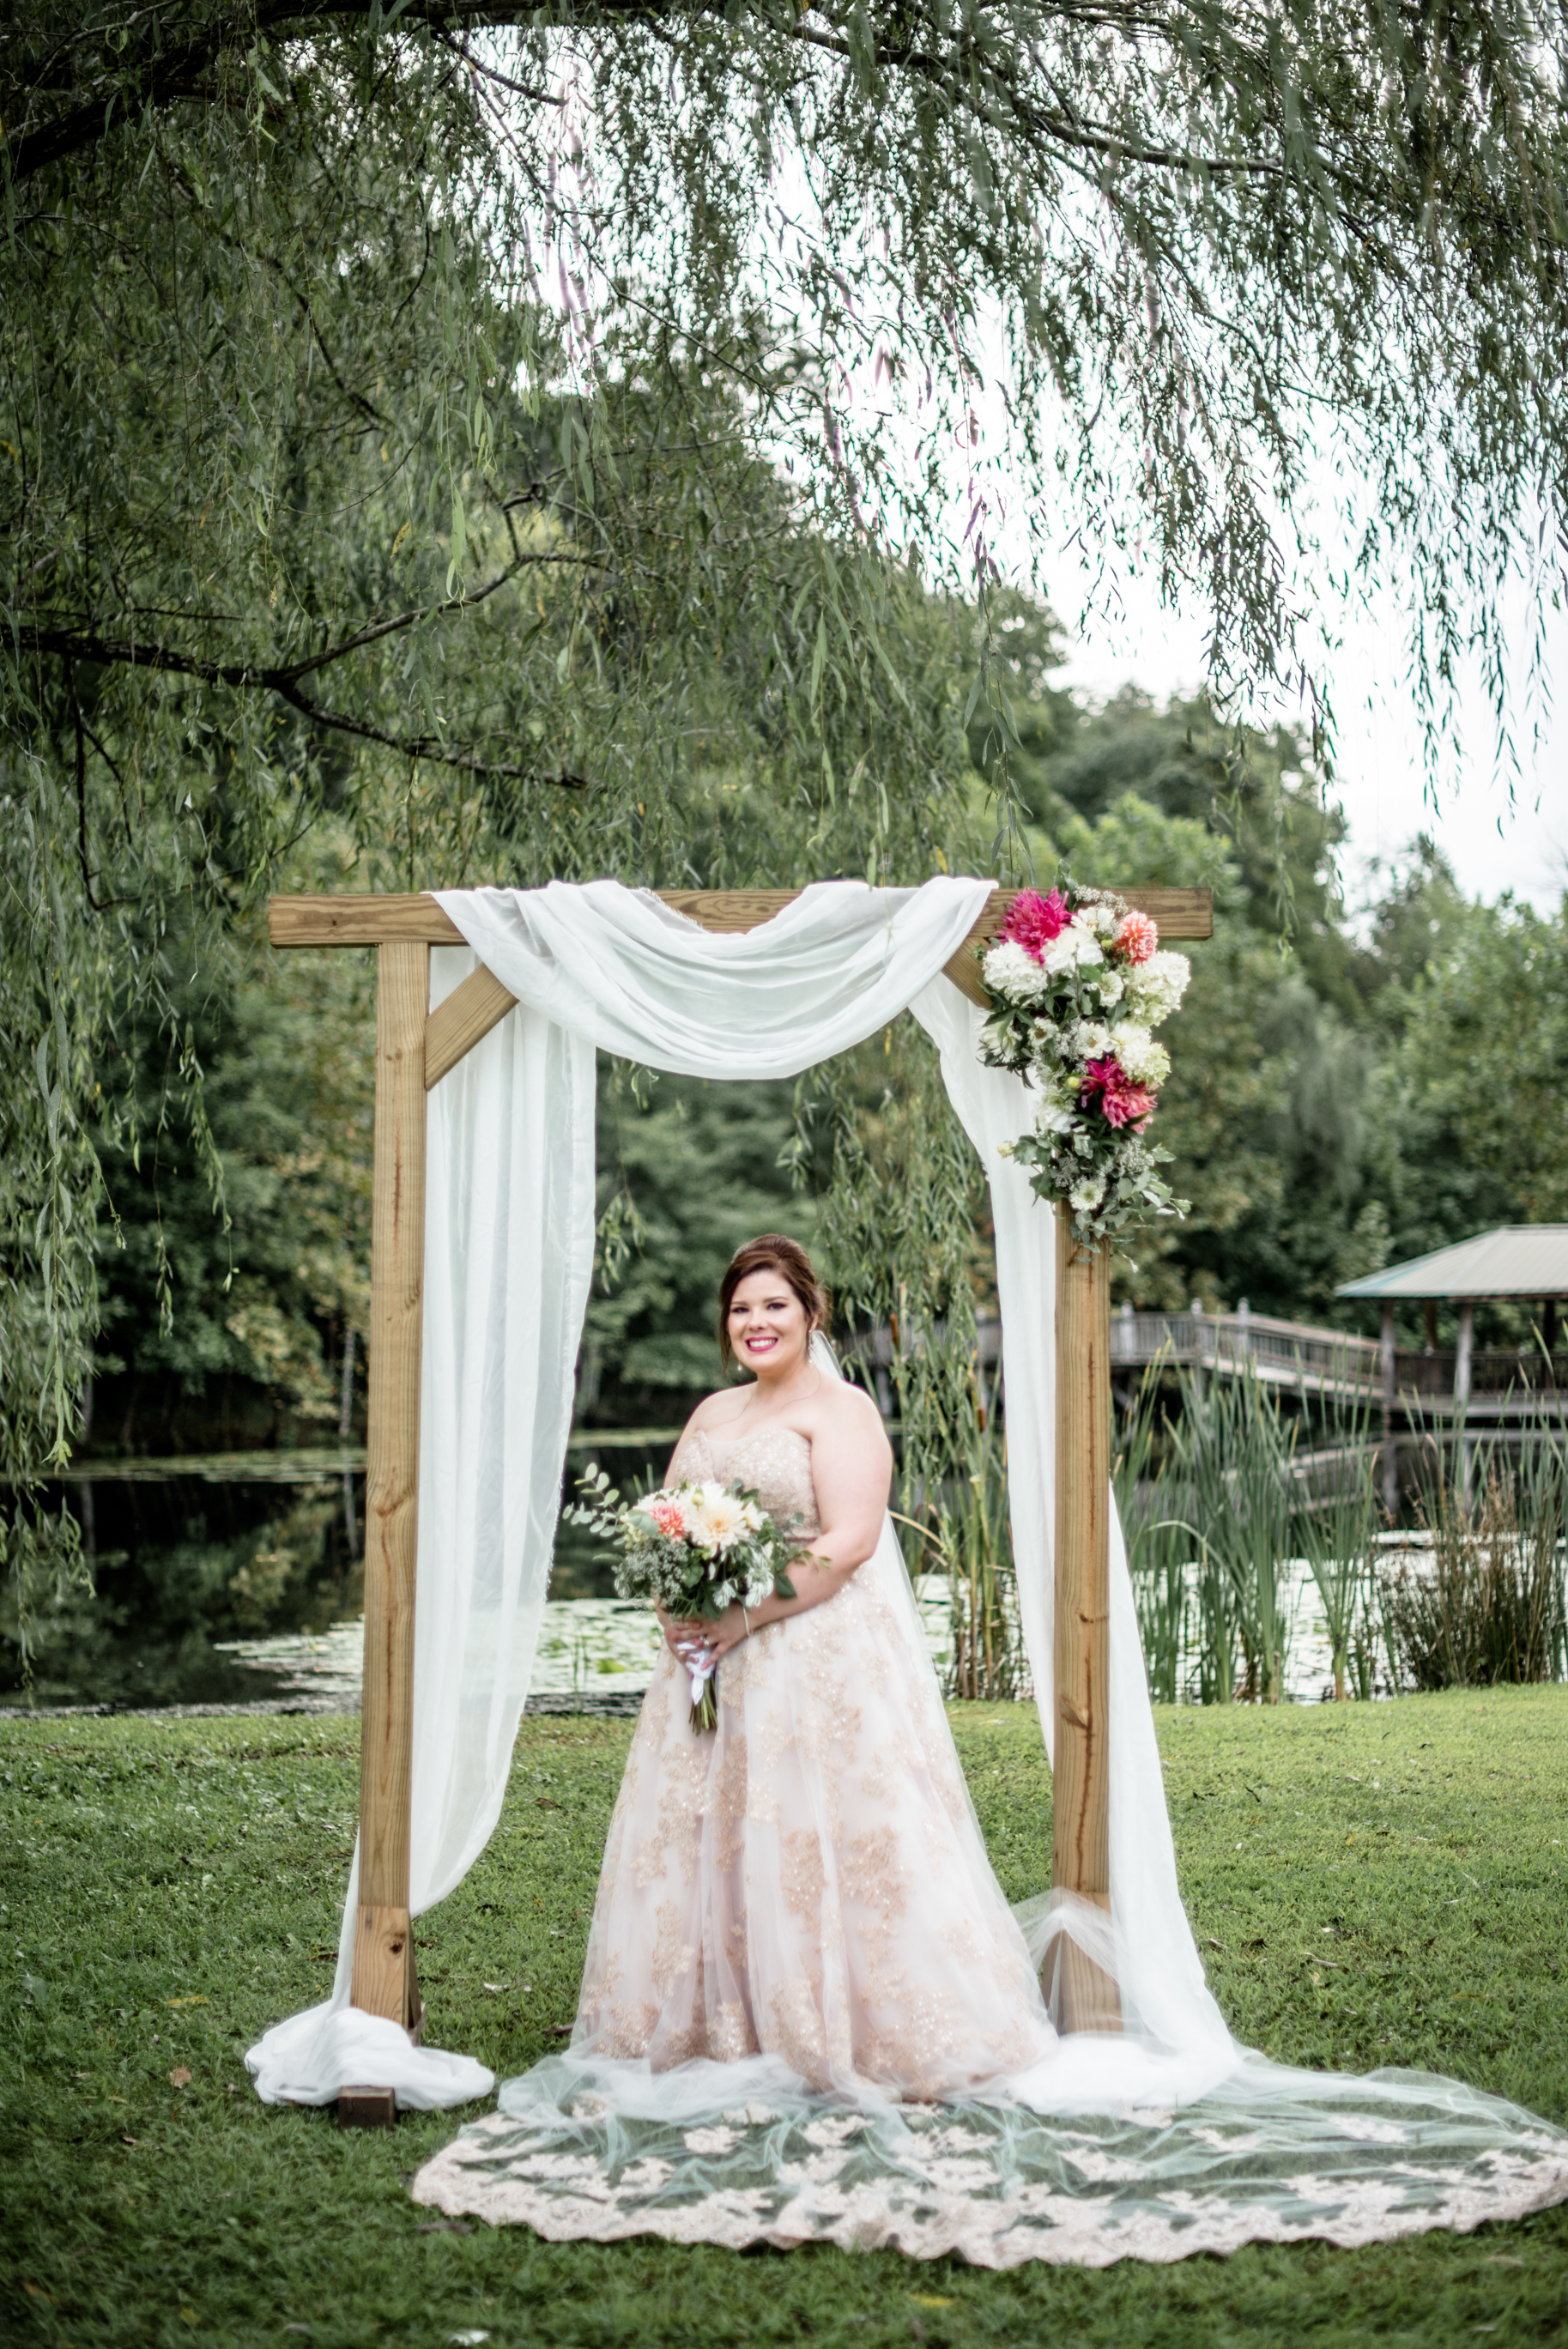 romantic bridal portrait under arbor at willow tree by pond